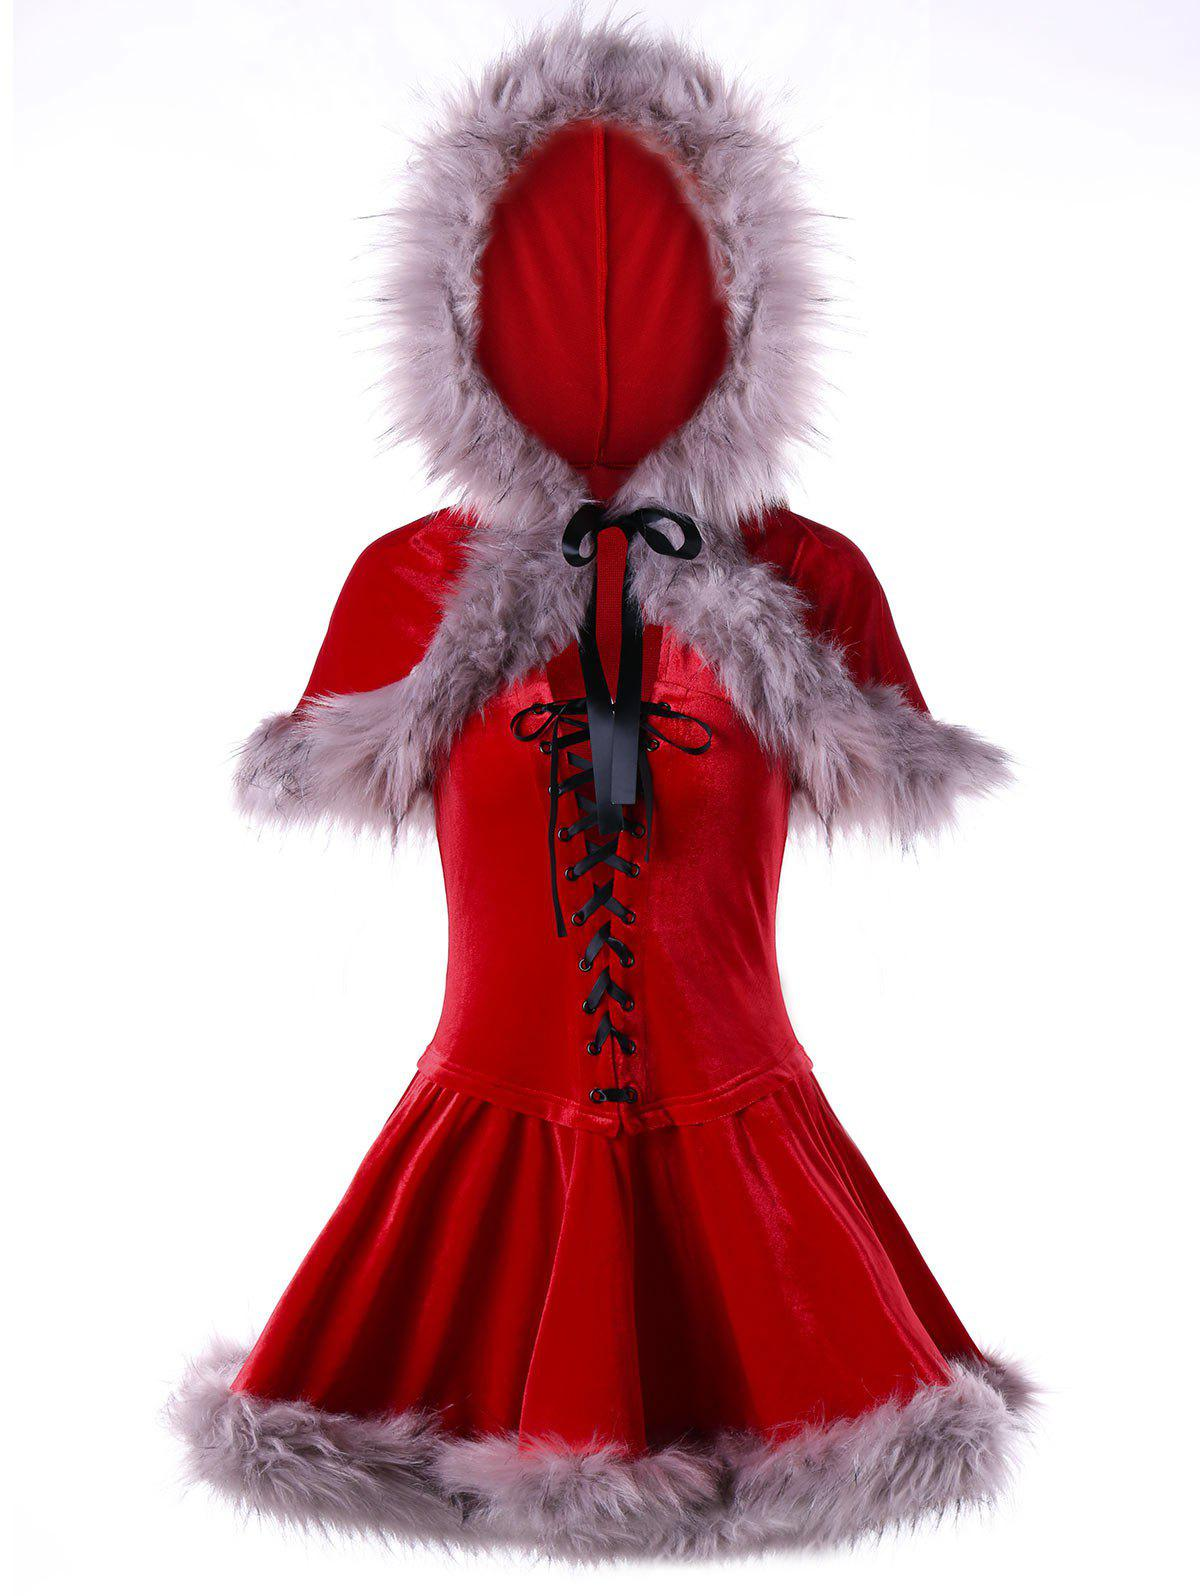 Ugly Christmas Lace Up Velvet Cape DressWOMEN<br><br>Size: XL; Color: RED; Style: Cute; Material: Polyester; Silhouette: A-Line; Dresses Length: Mini; Neckline: Convertible Collar; Sleeve Length: Sleeveless; Pattern Type: Others; With Belt: No; Season: Fall,Winter; Weight: 0.6770kg; Package Contents: 1 x Dress  1 x Cape;